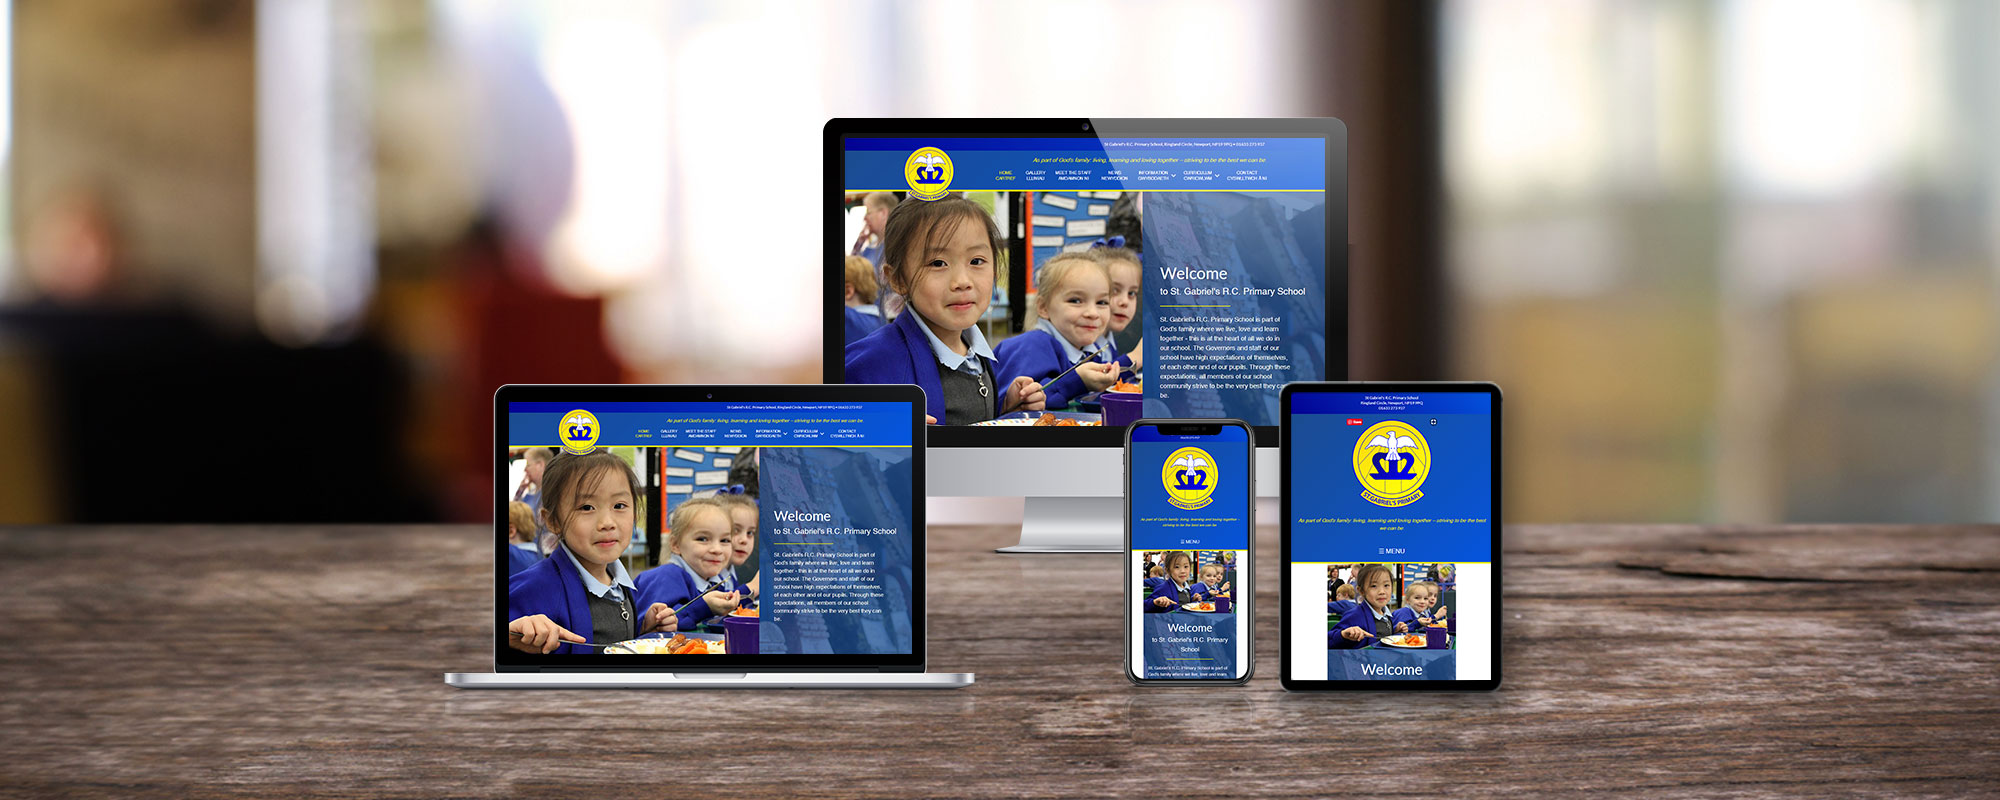 St-Gabriels-Primary-School-Web-Design